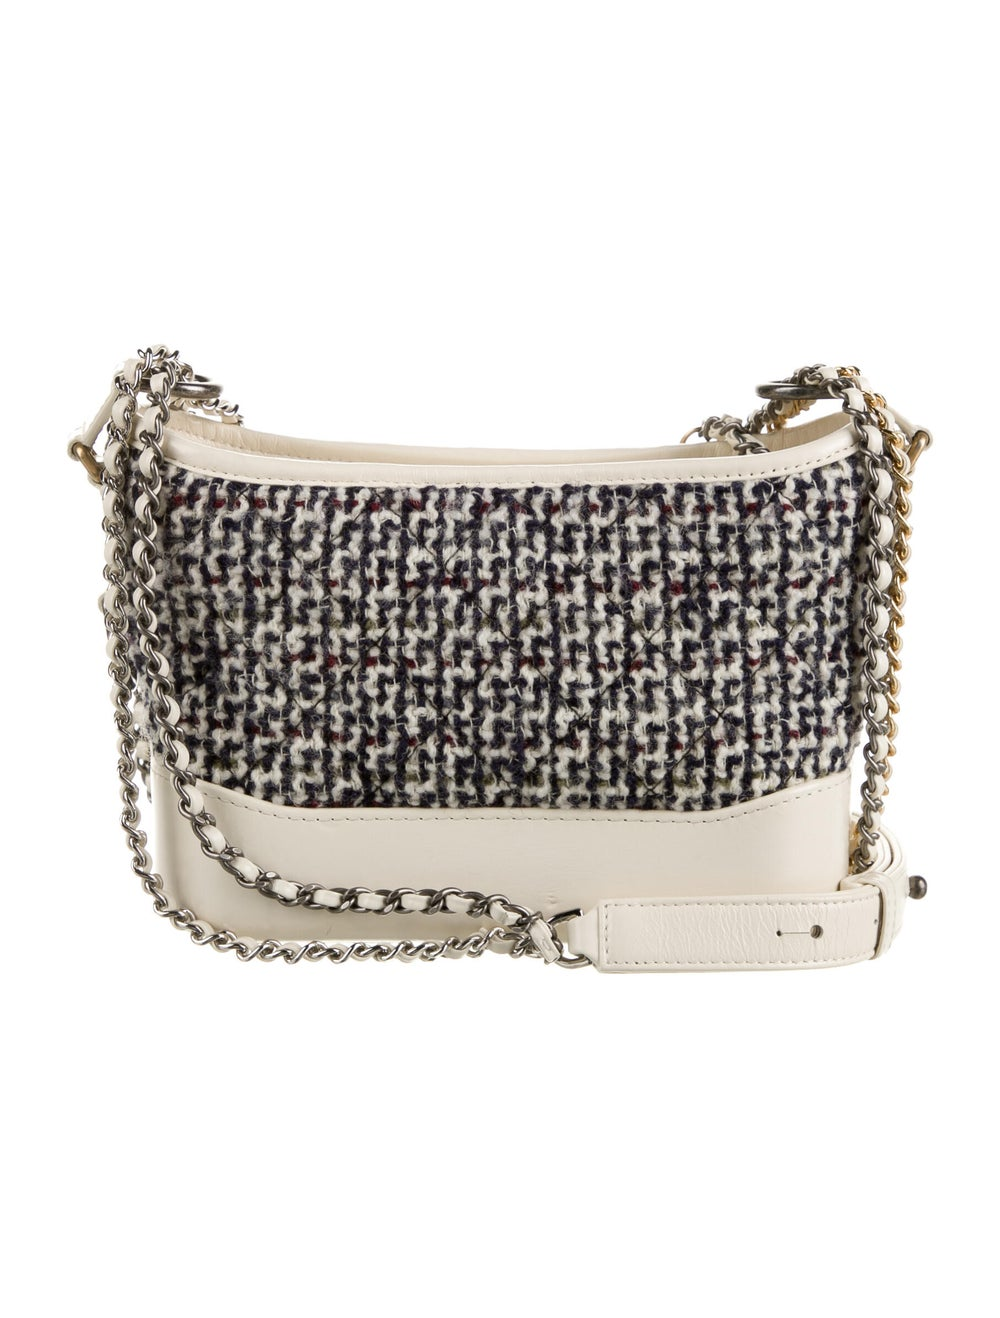 Chanel Tweed Small Gabrielle Bag Blue - image 4